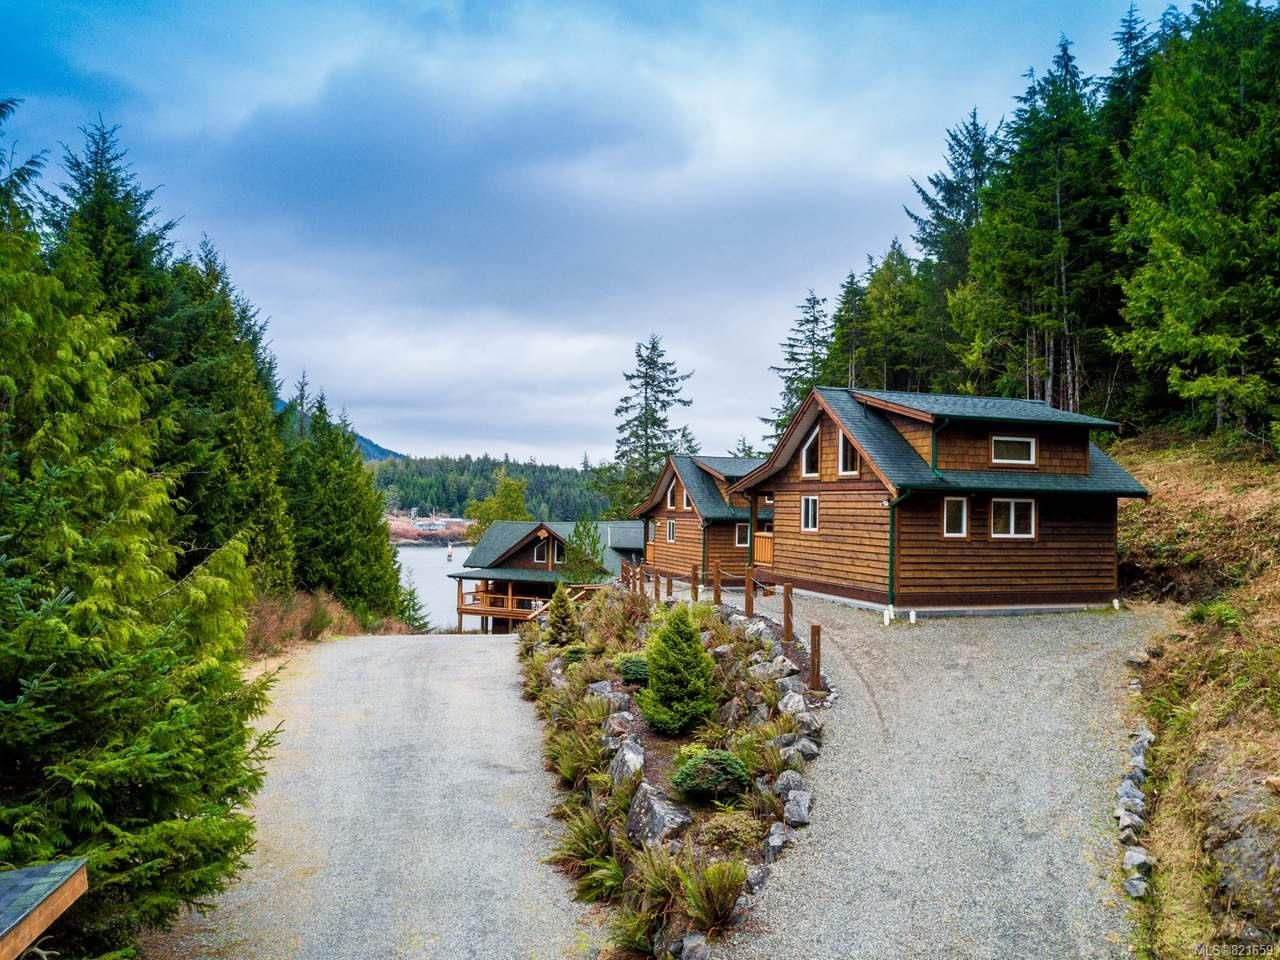 Photo 69: Photos: 1049 Helen Rd in UCLUELET: PA Ucluelet House for sale (Port Alberni)  : MLS®# 821659